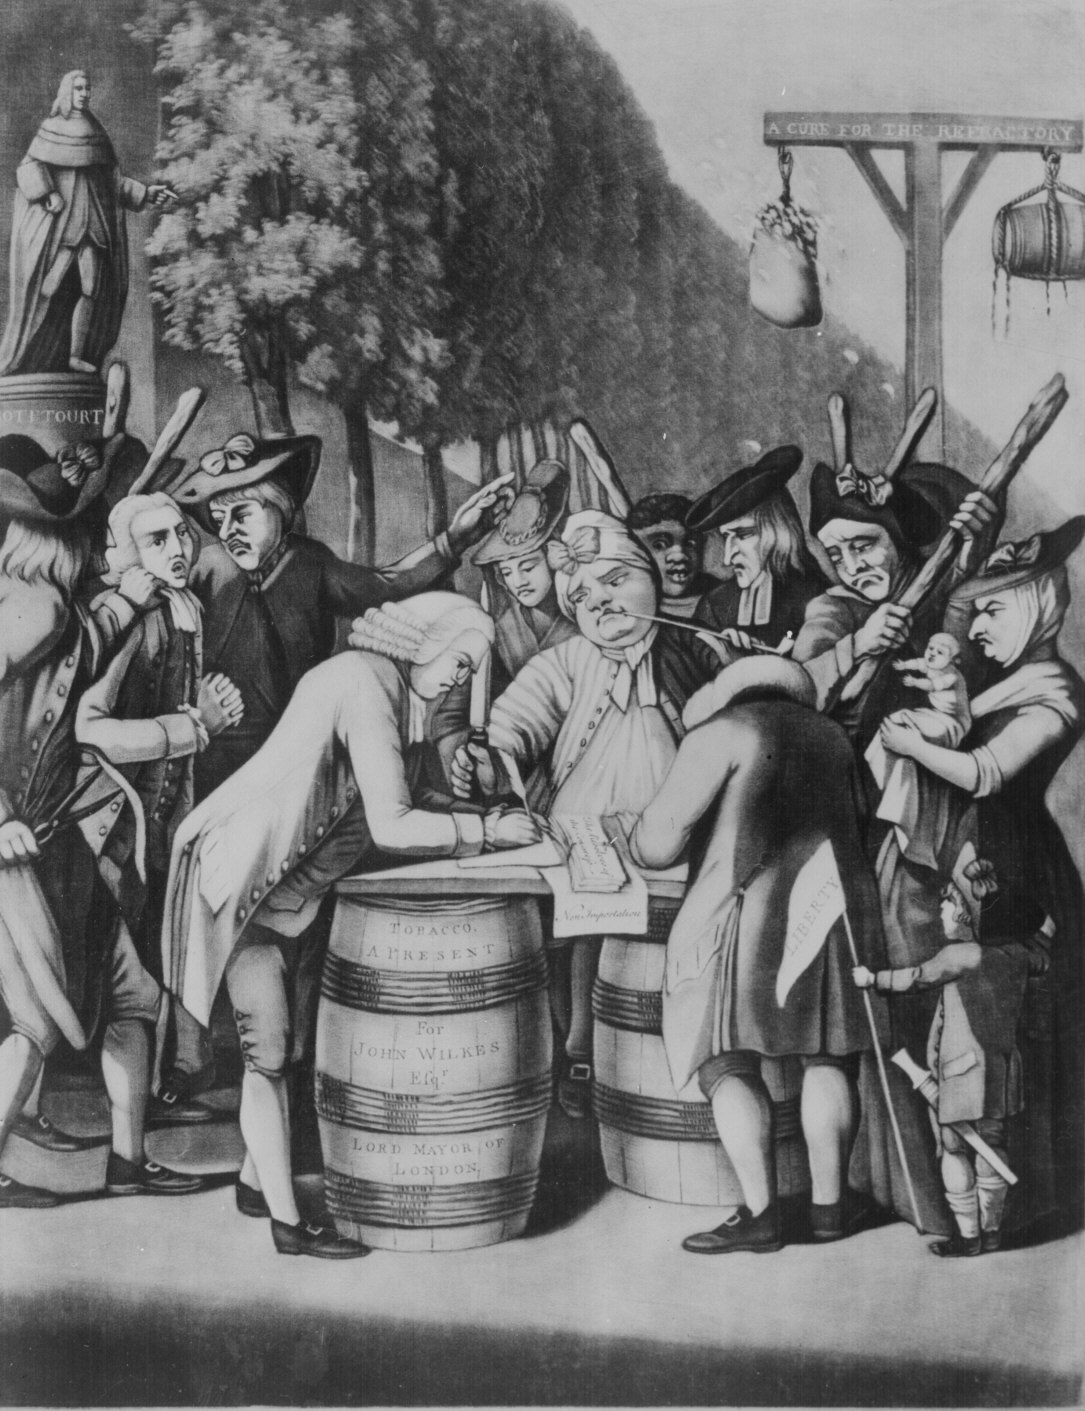 dbq on political women in the The role of women and their political, economic, and social opportunities in american society shifted greatly from the prerevolutionary war era to the early.